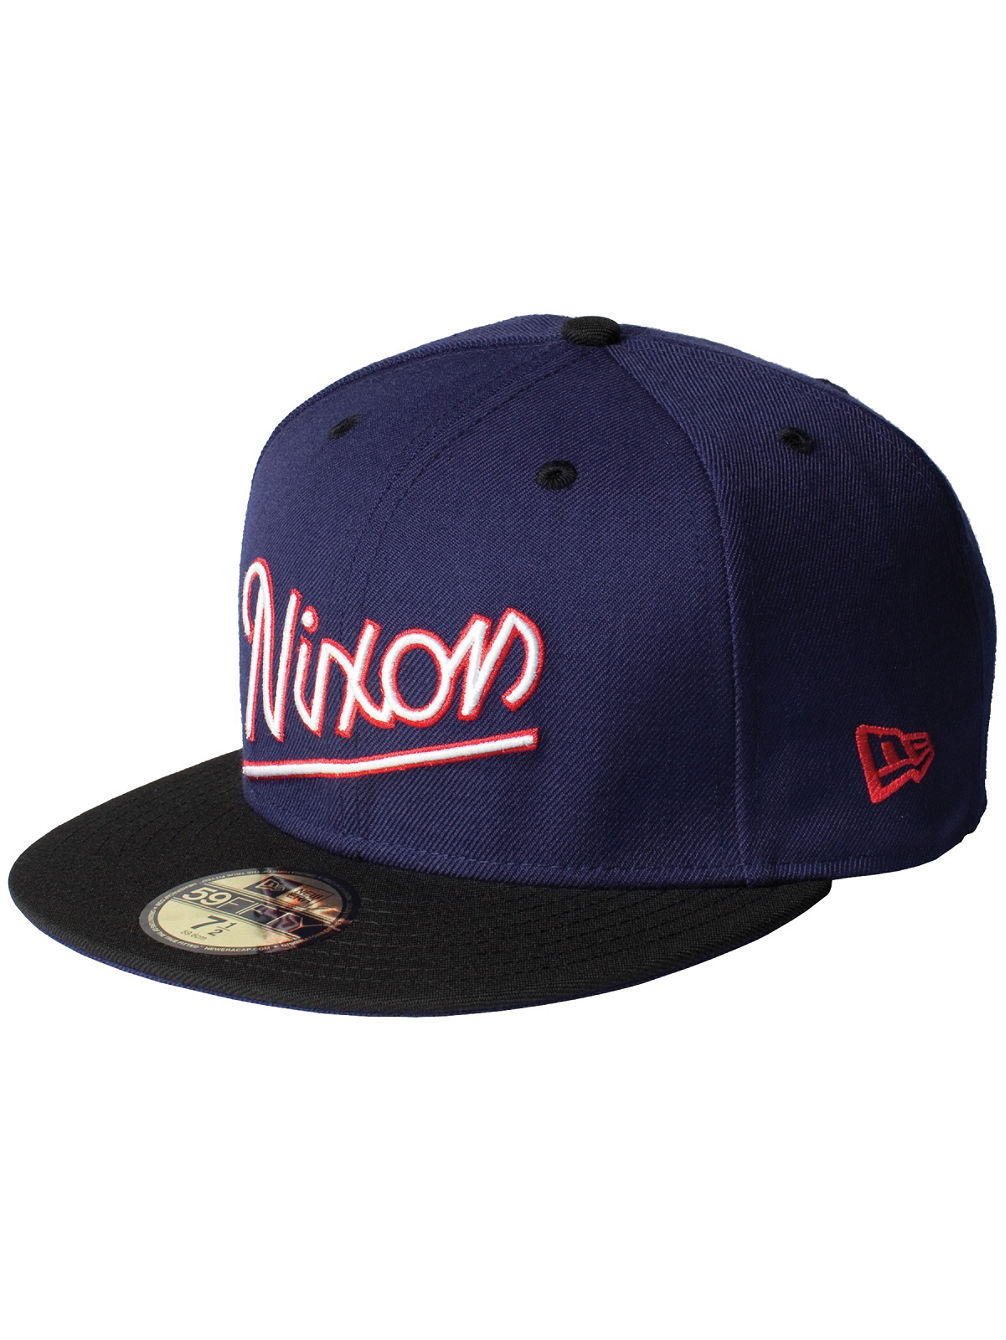 Monroe New Era Cap